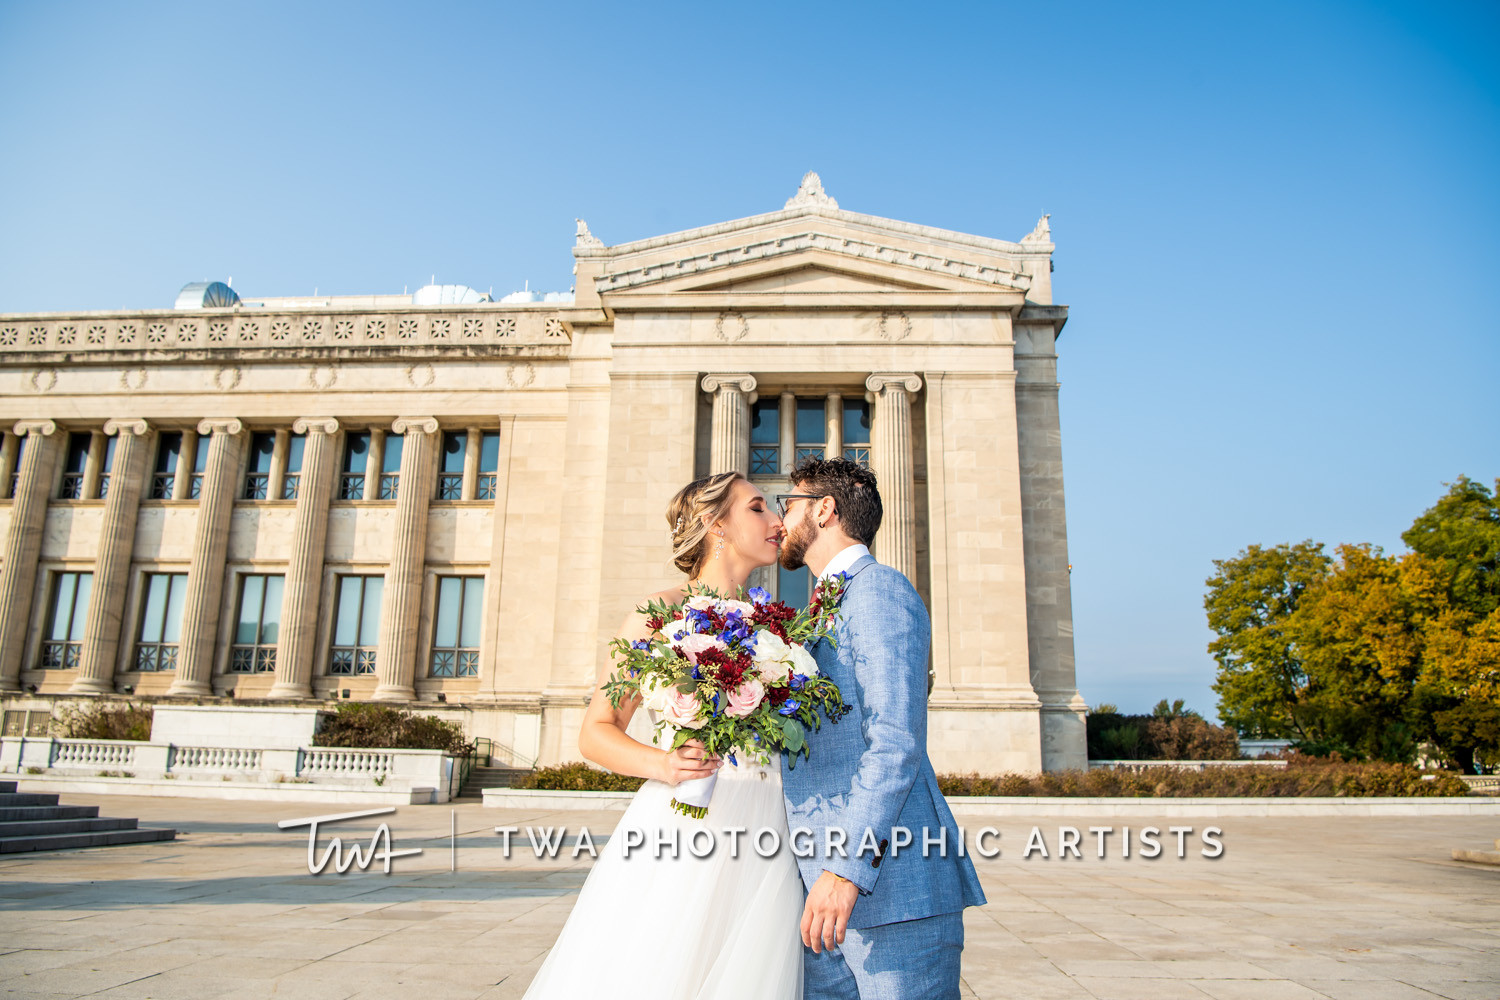 Chicago-Wedding-Photographer-TWA-Photographic-Artists-City-Hall-Event_Masterova_Alkhateeb_AA-0315